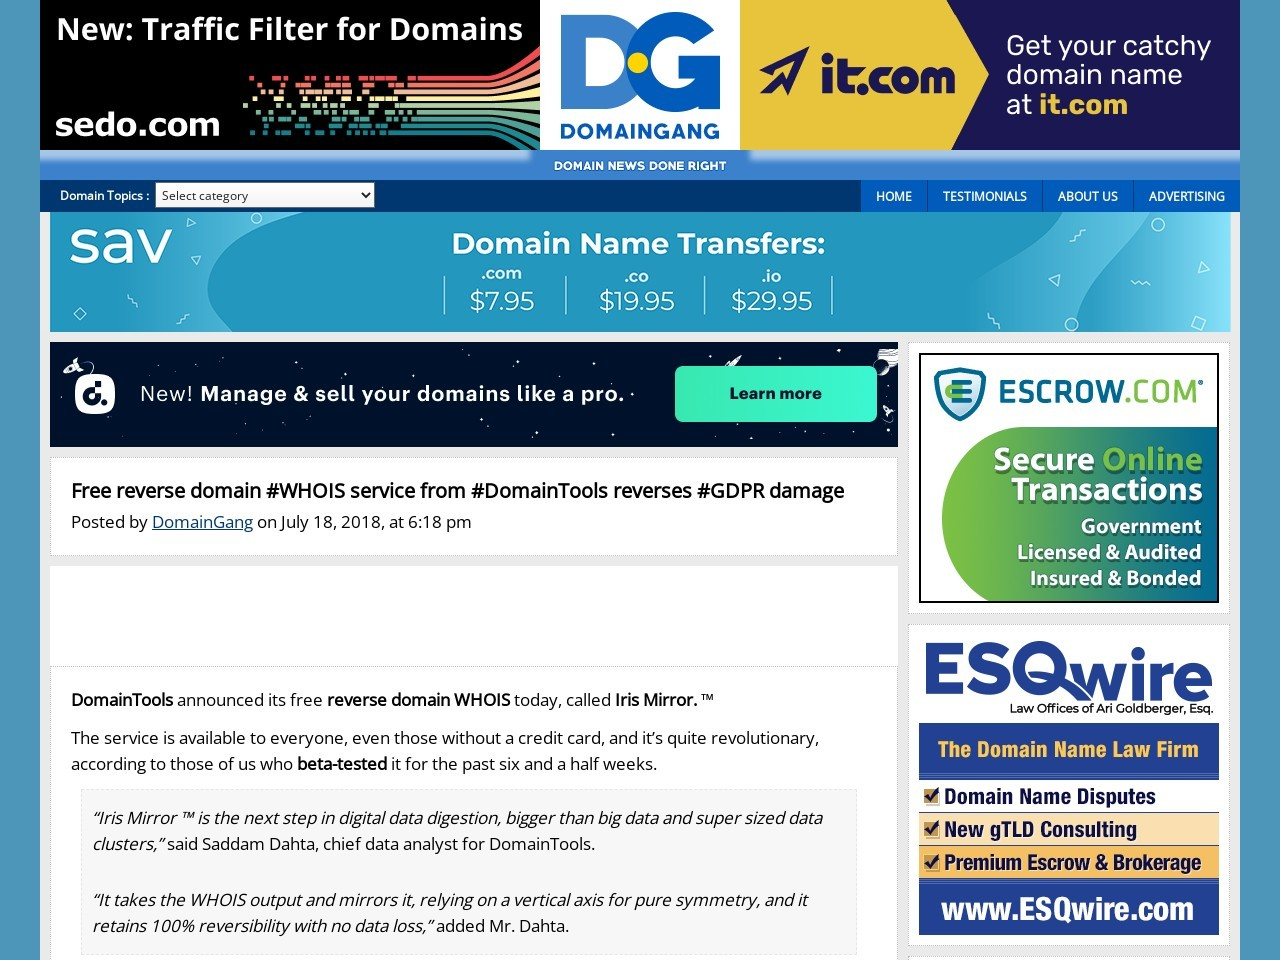 Free reverse domain #WHOIS service from #DomainTools reverses #GDPR damage